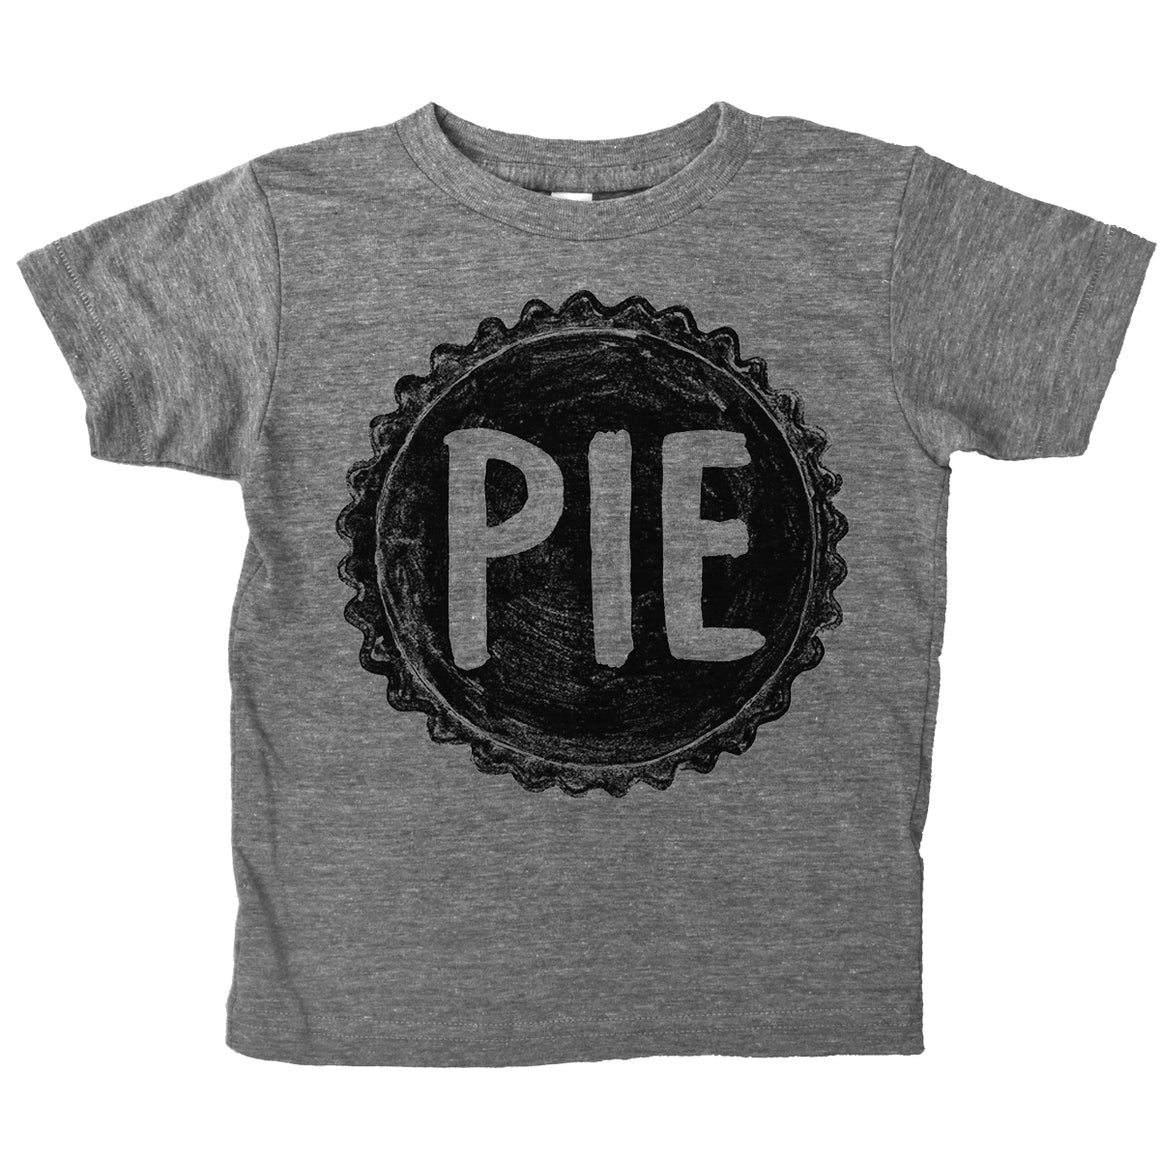 Unisex Pumpkin Pie Kids Shirt for Thanksgiving